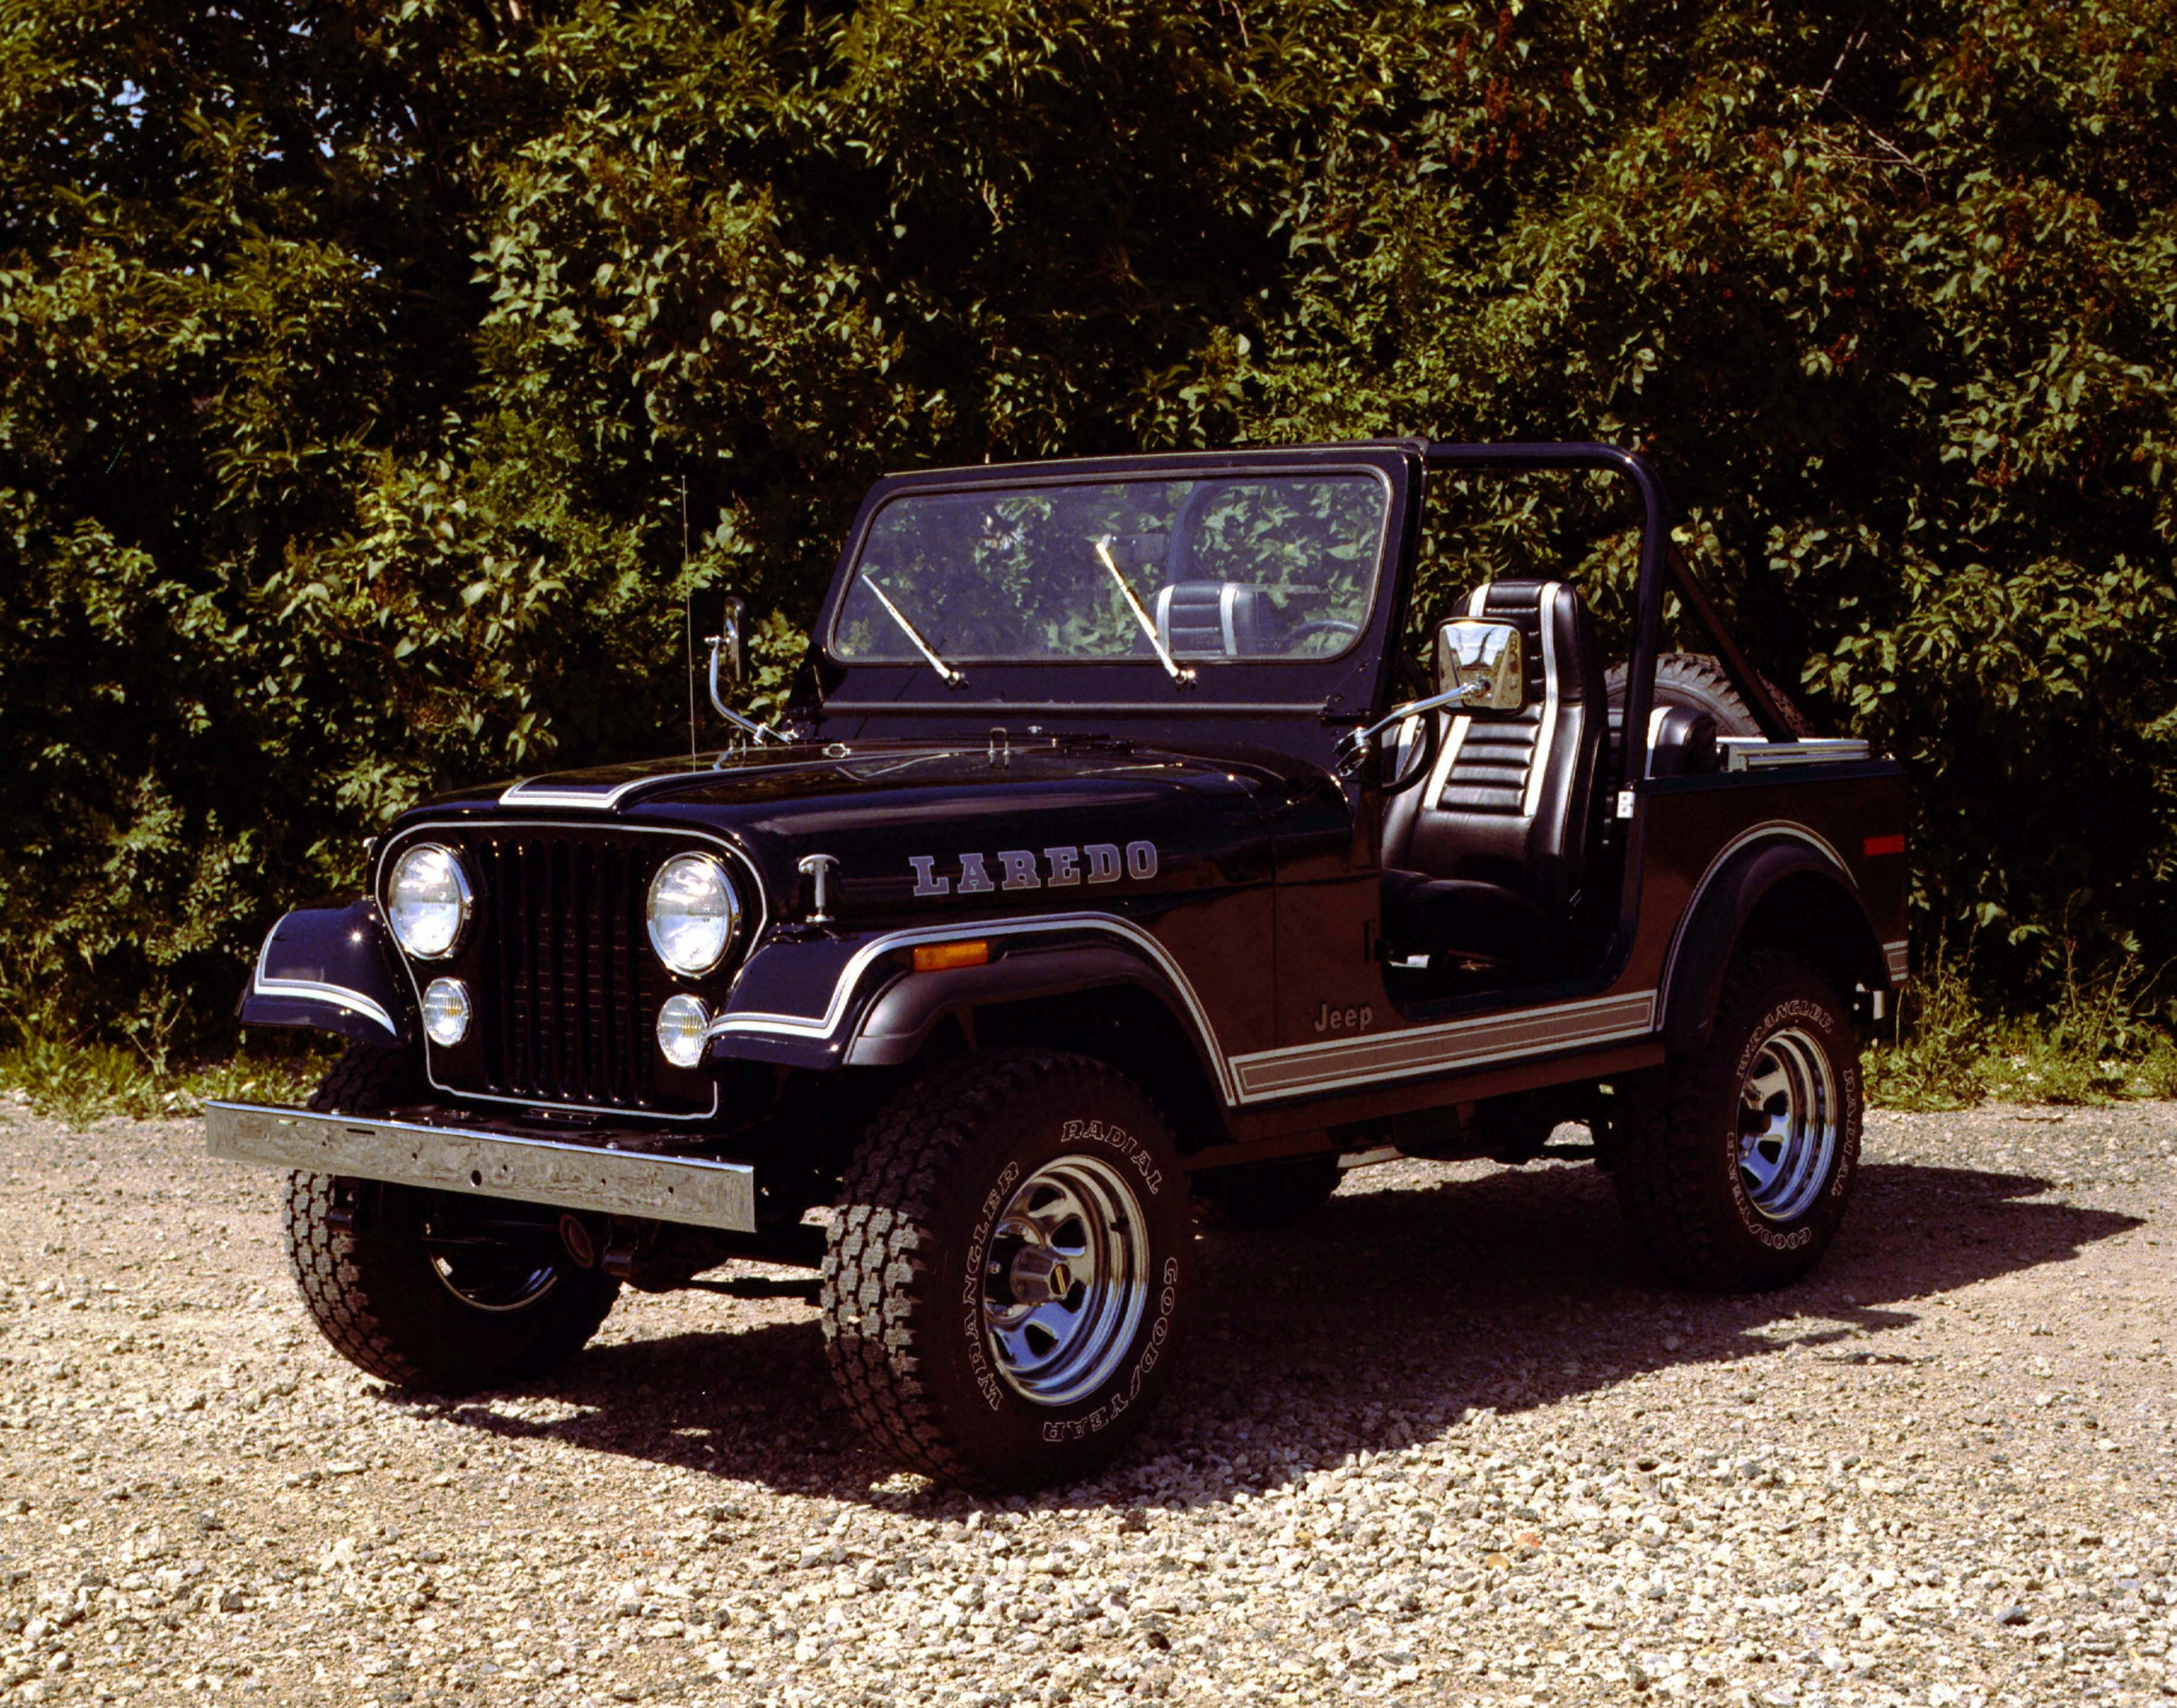 161 best jeep images on pinterest jeep truck jeep stuff and jeep jeep